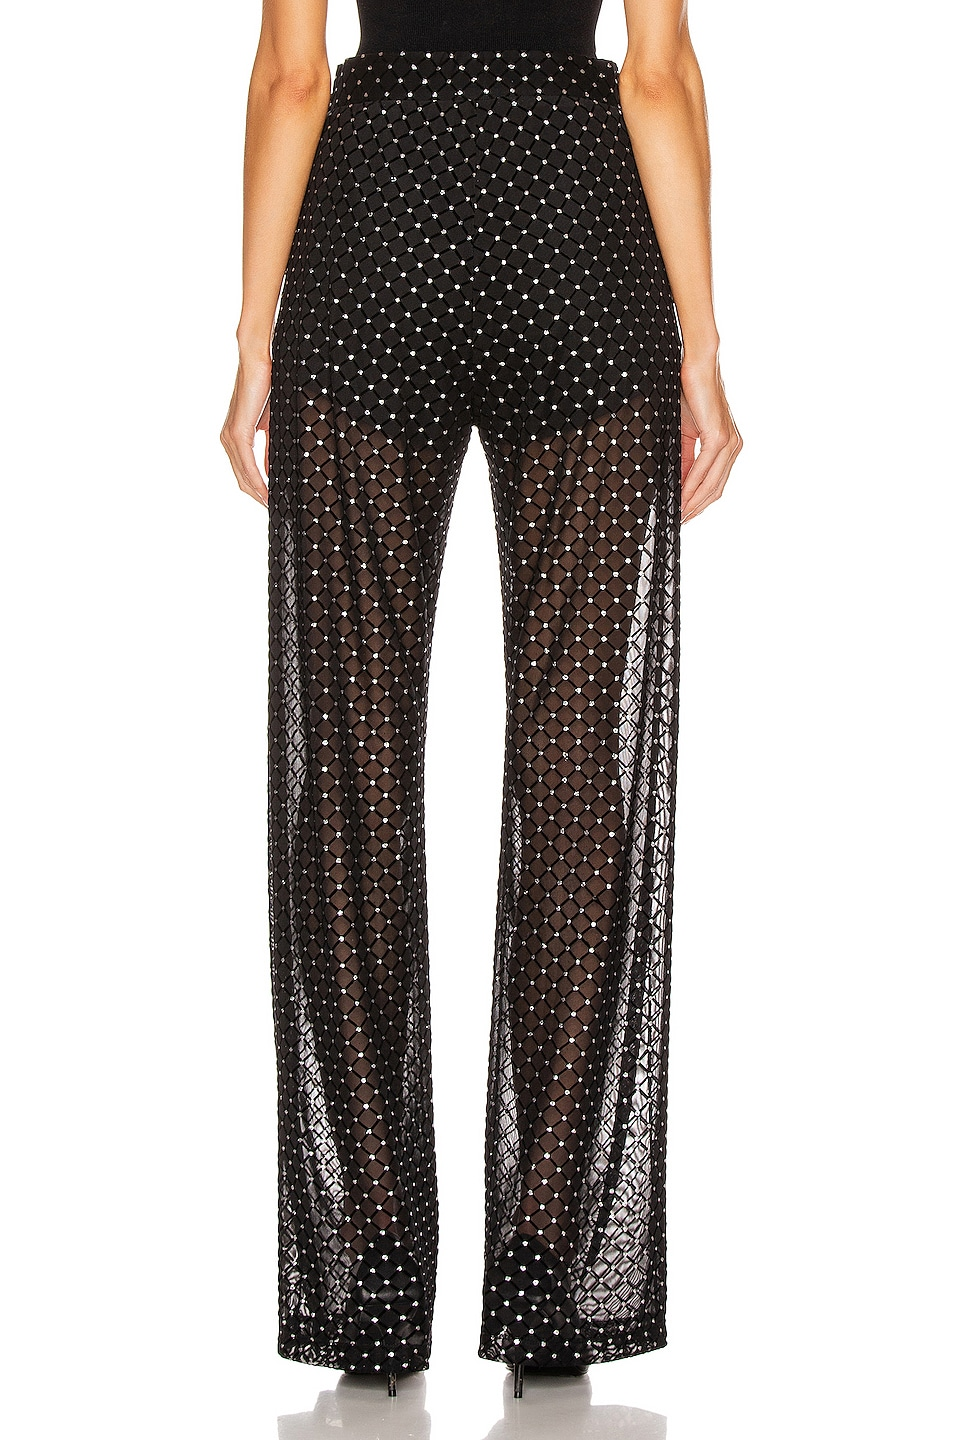 Image 3 of Michelle Mason for FWRD Sheer Pant in Black Shimmer